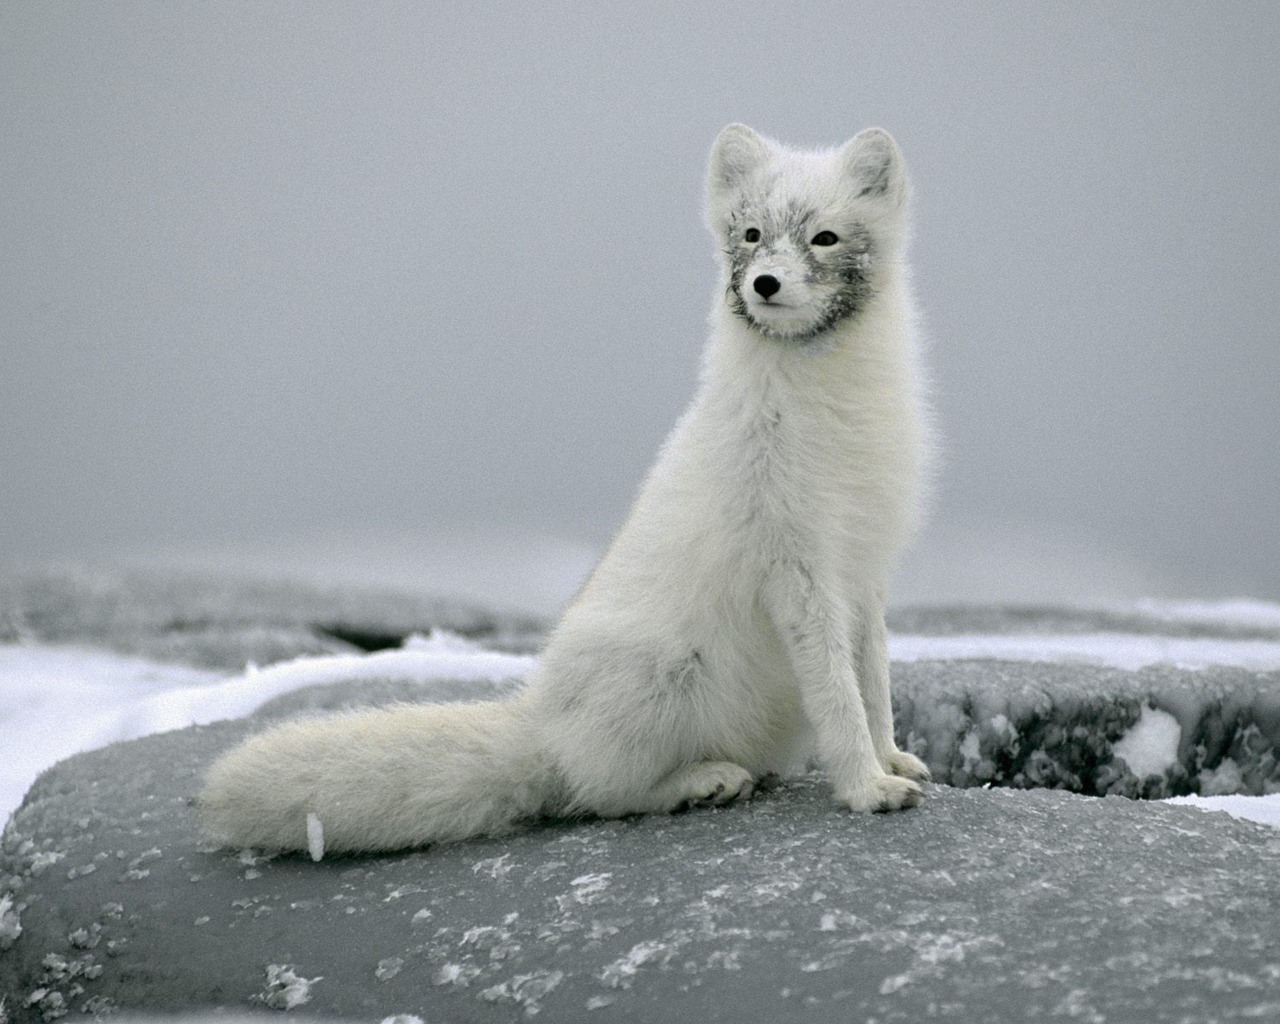 animals amazing wallpapers dog animal backgrounds awesome desktop fox wild anime arctic artic renard looking snow